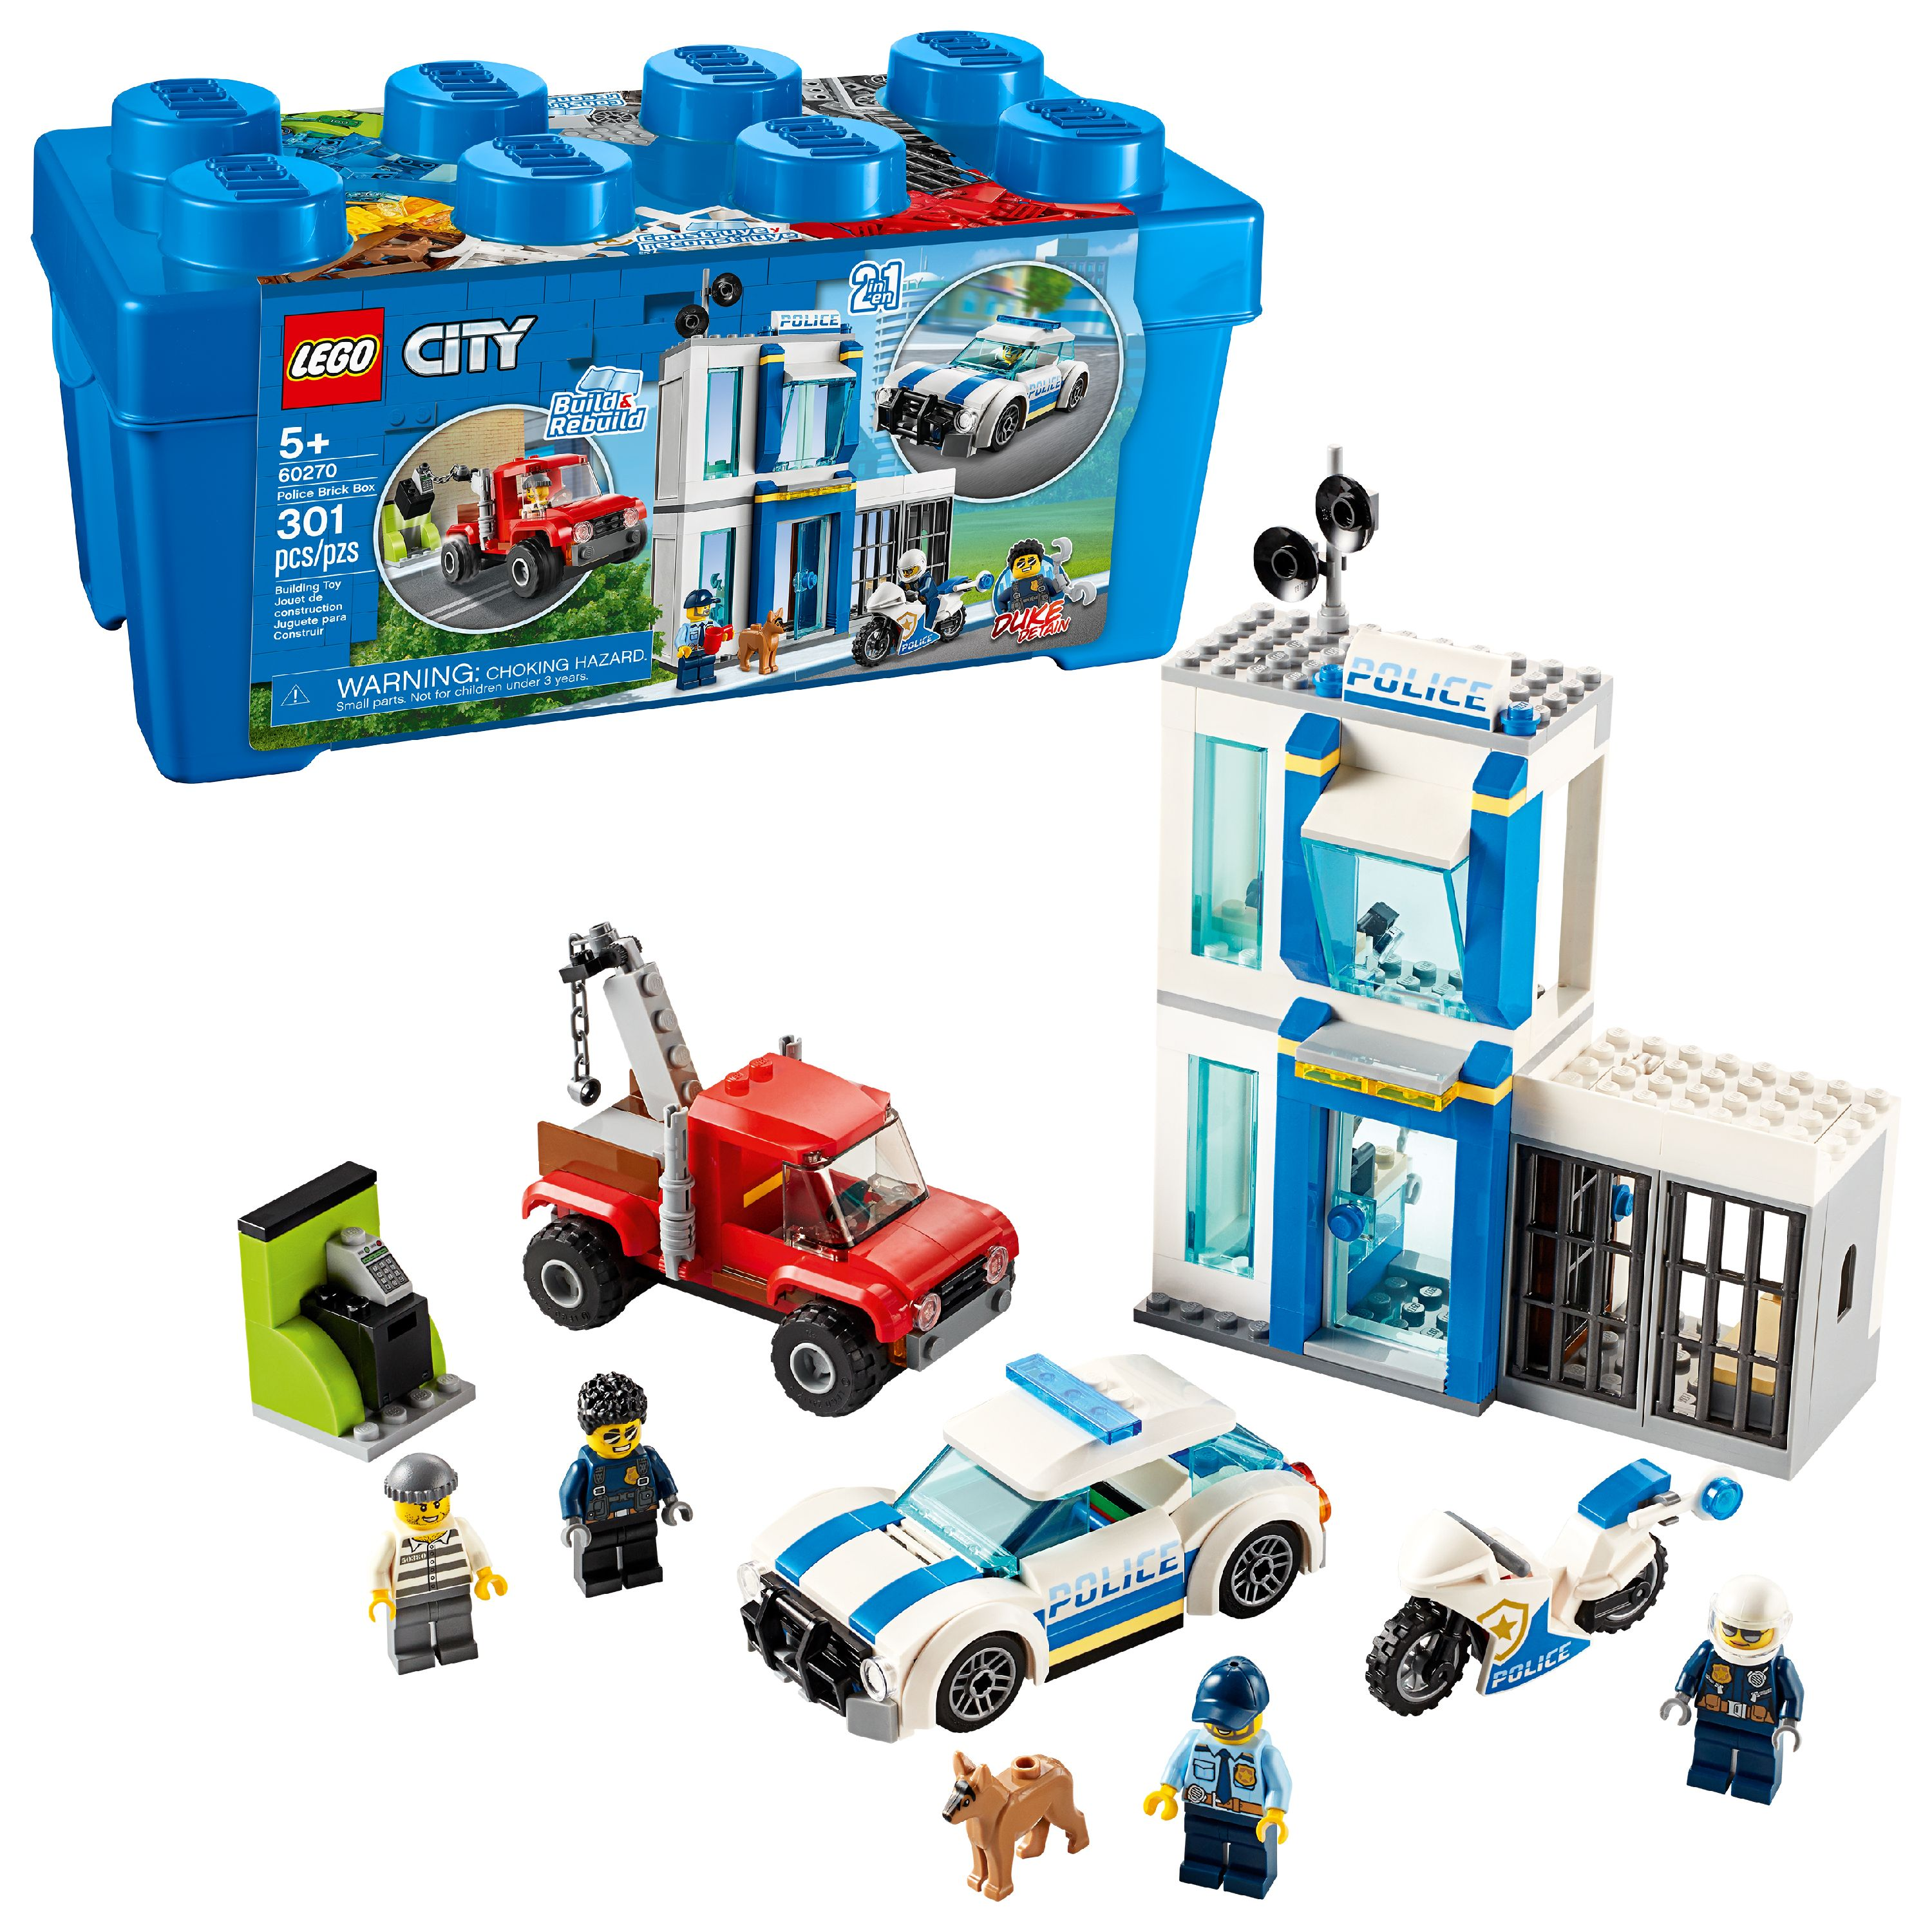 LEGO City Police Brick Box 60270 Building Playsets for ...